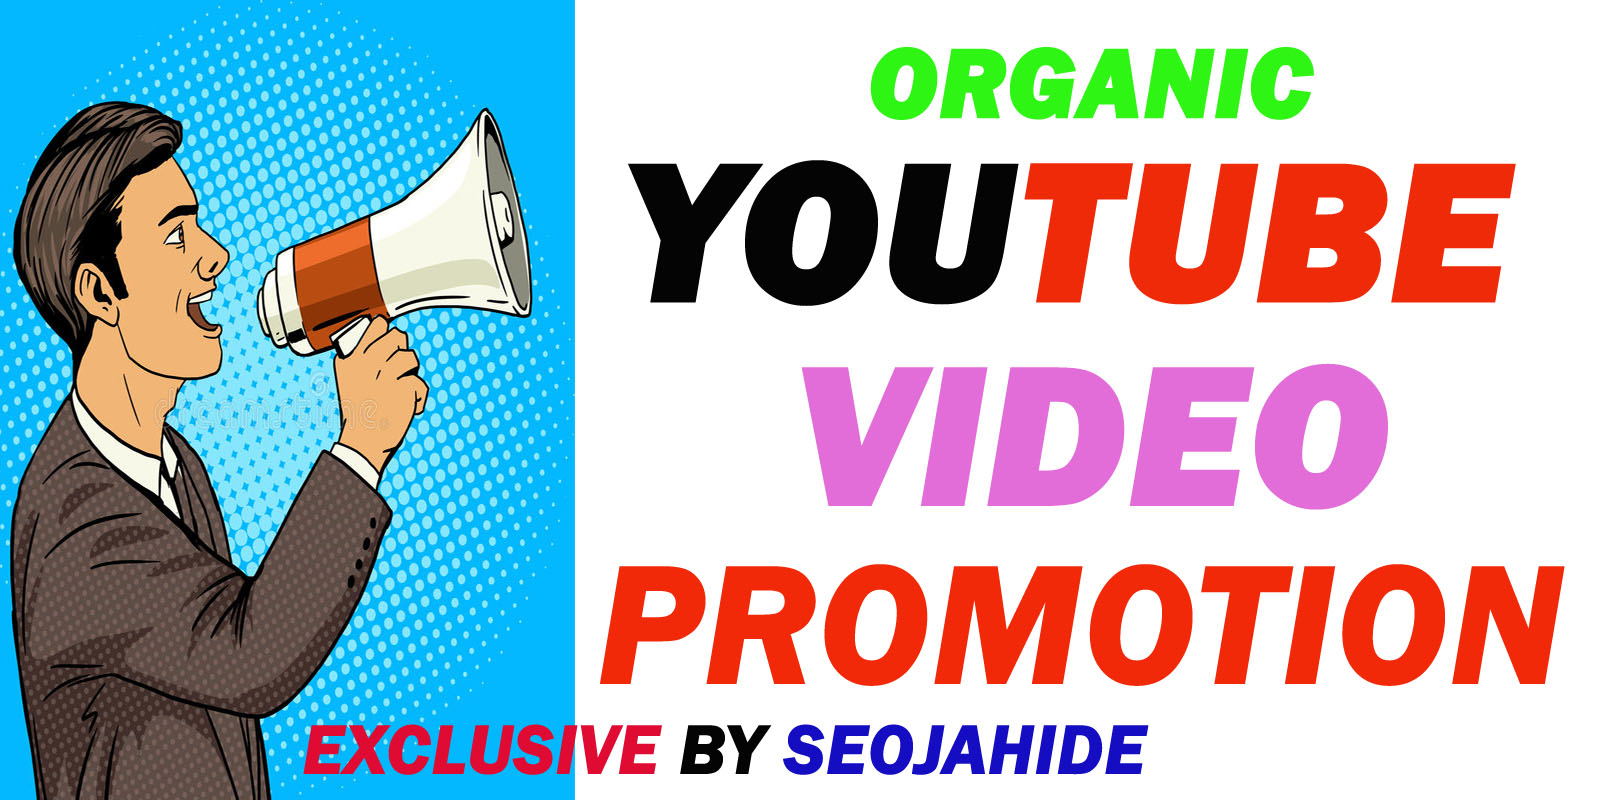 YouTube Video Visitor Promotion Via Real World Wide User